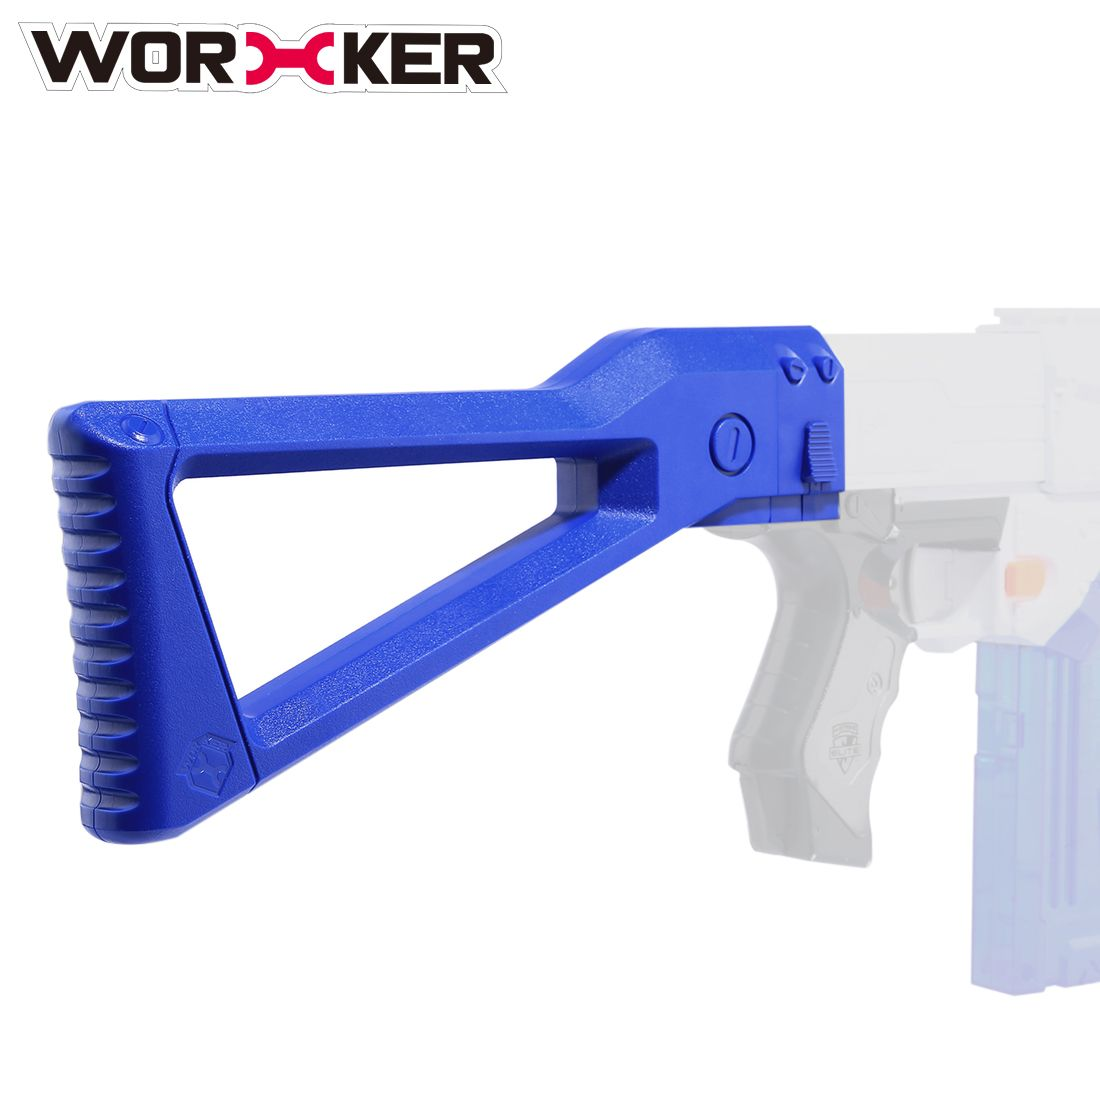 Worker AK Mold ABS Shoulder Tail Stock Buttstock Toy Accessories for Nerf Toy Gun - Transparent